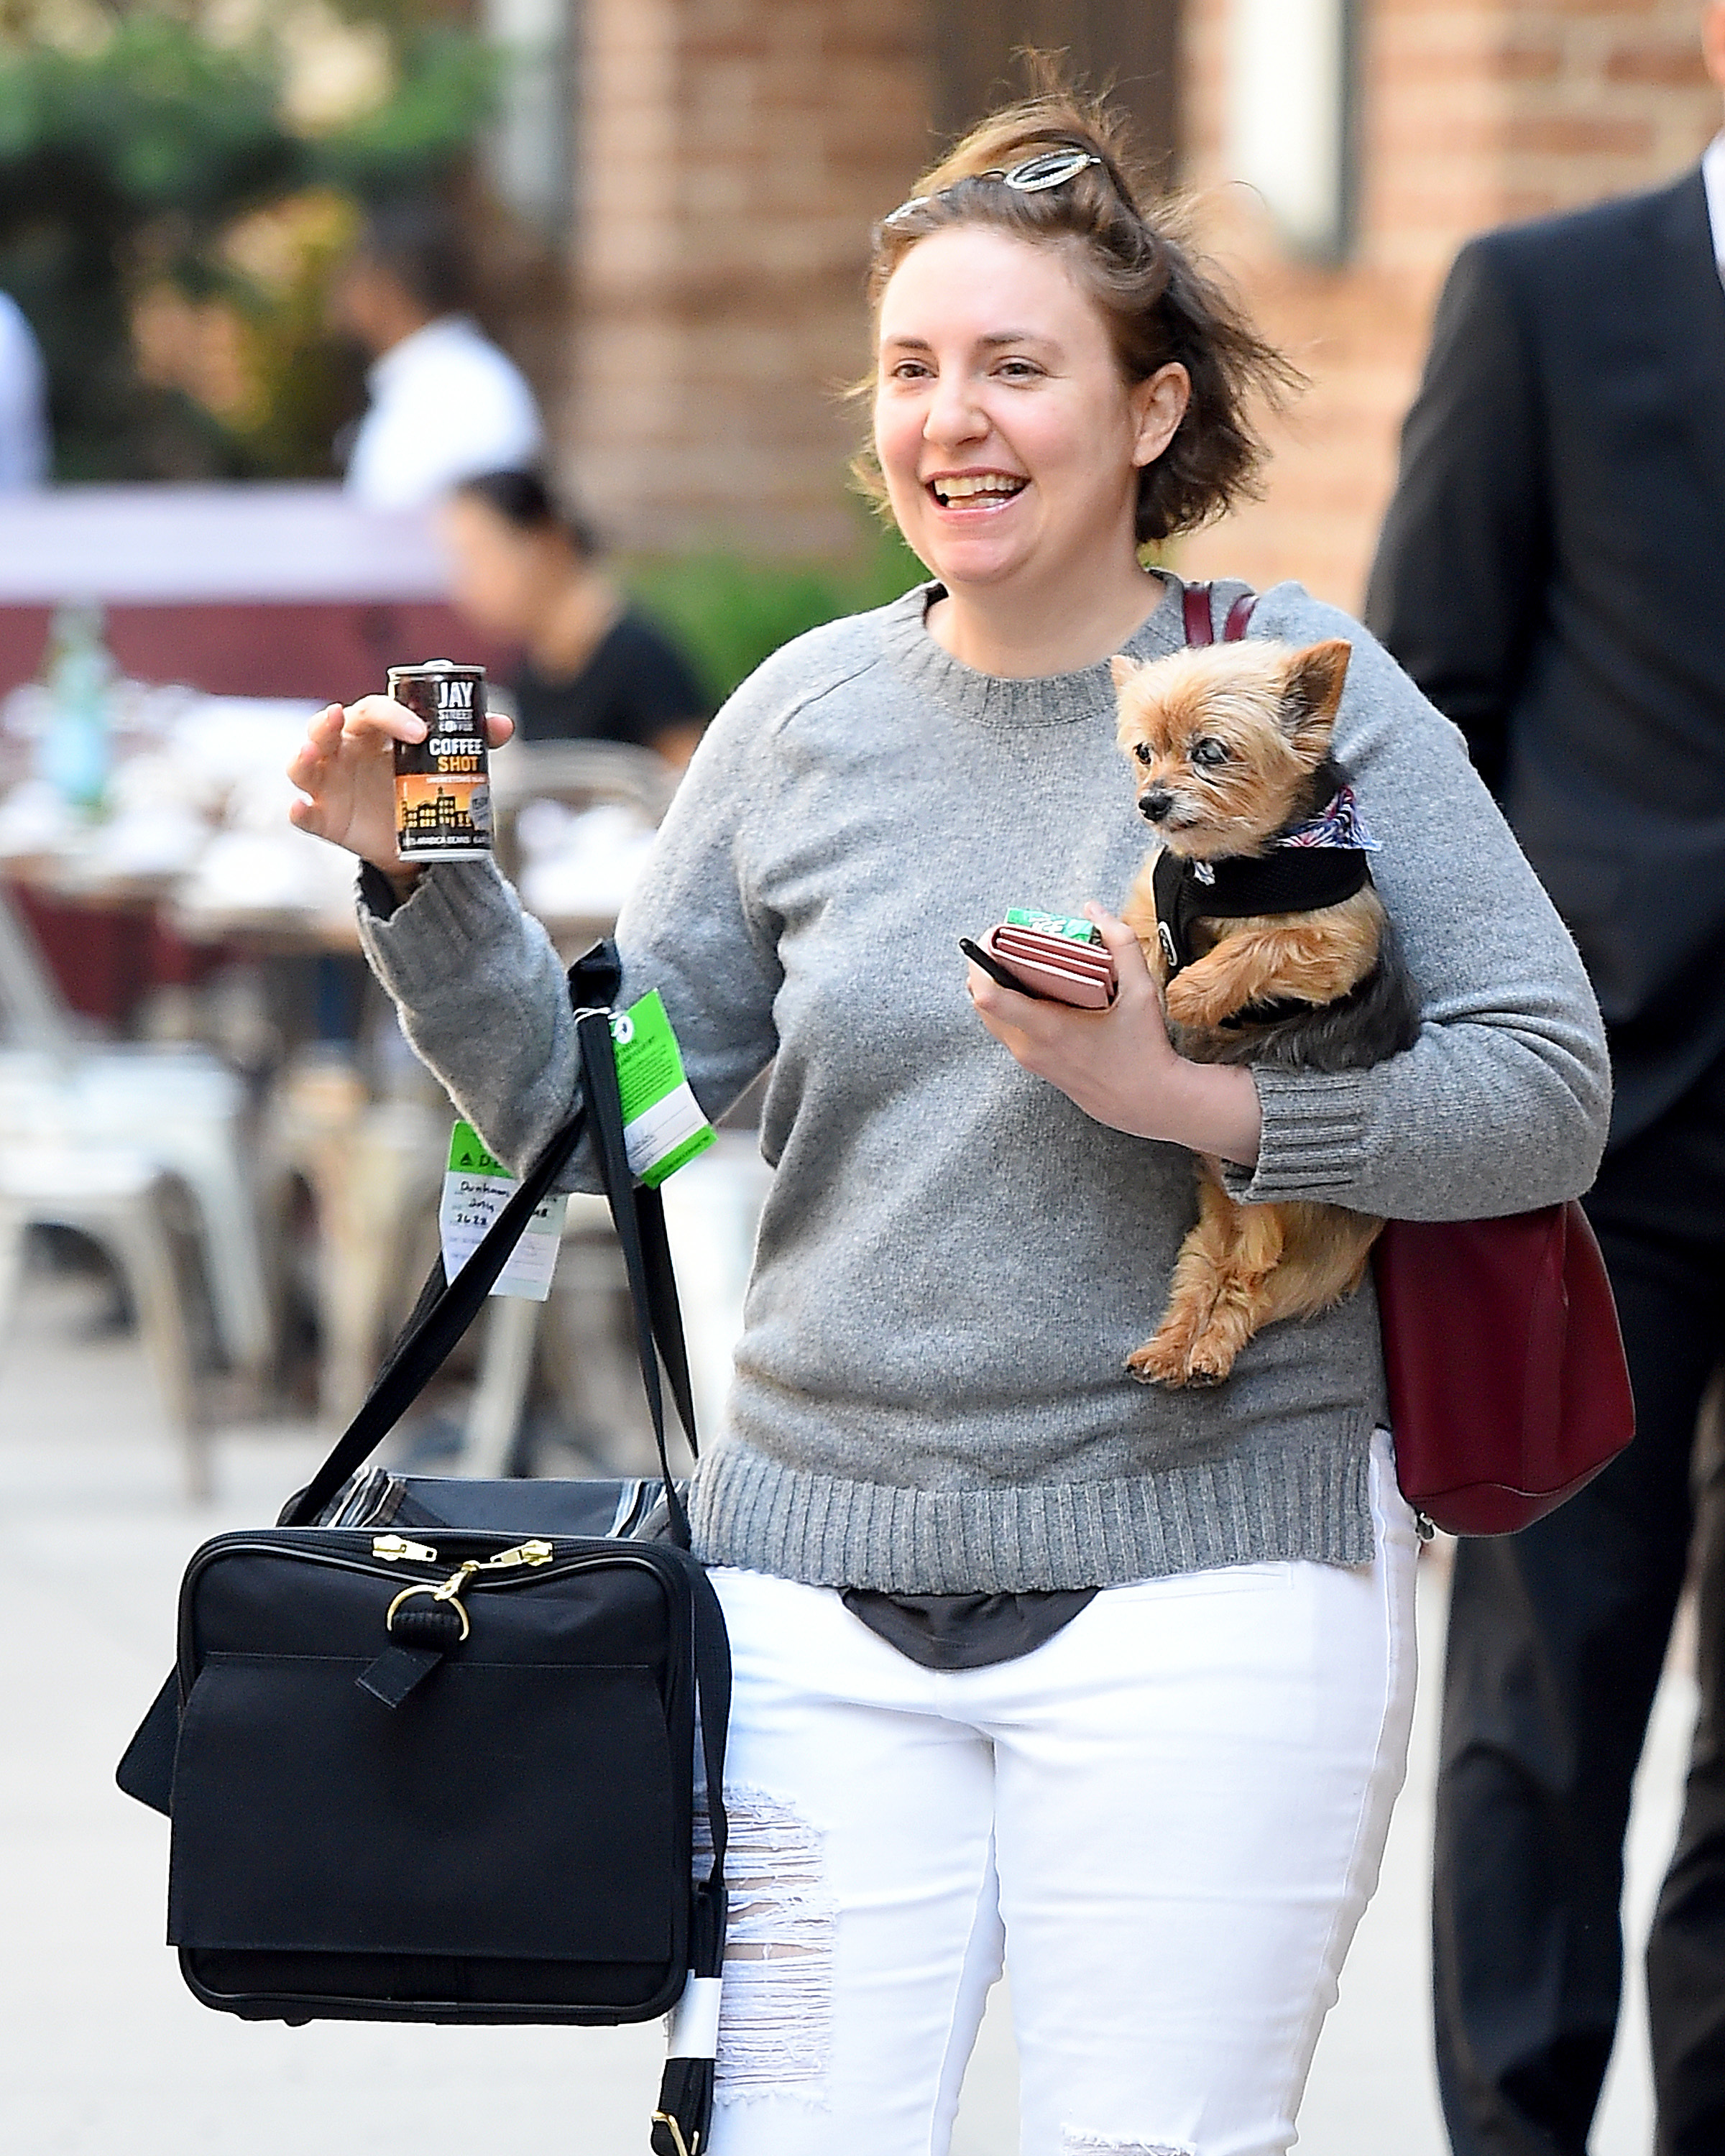 Lena Dunham looked happy as a clam while carrying her beloved dog around in New York City on July 26, 2018.